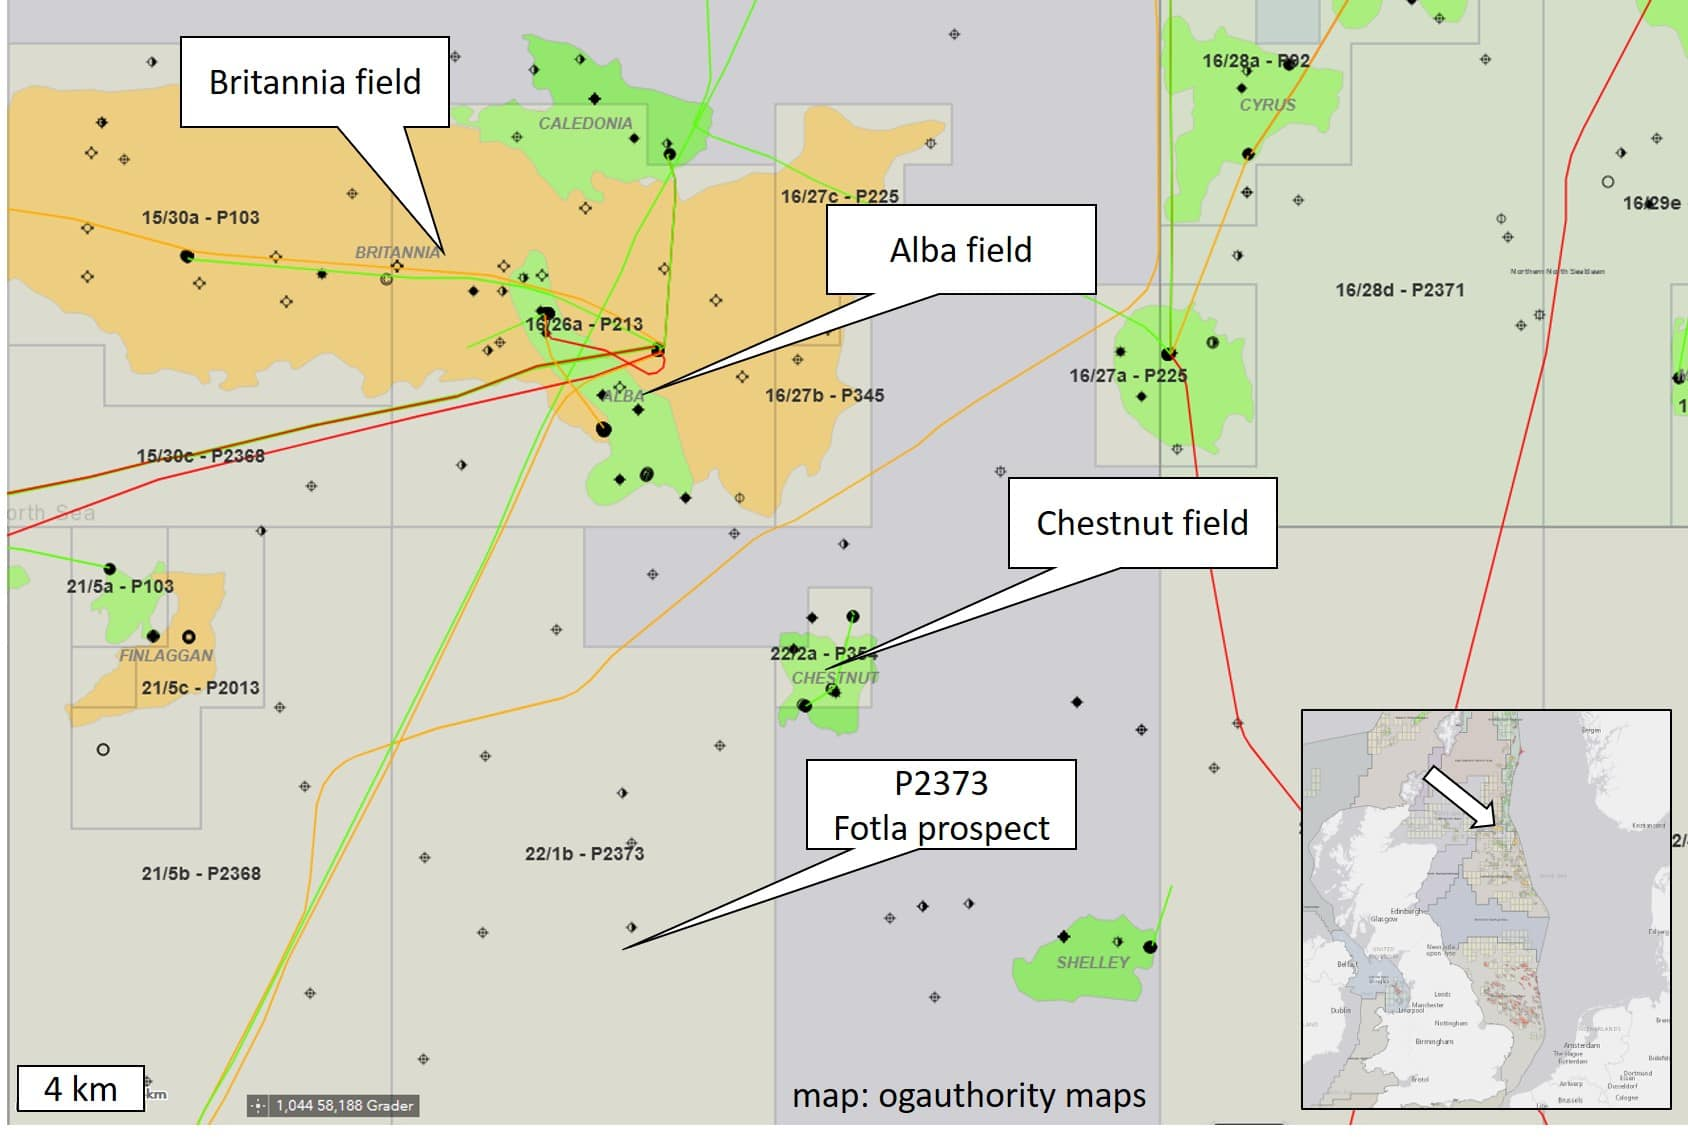 Ithaca to drill injectite prospect Fotla in Q3 2020